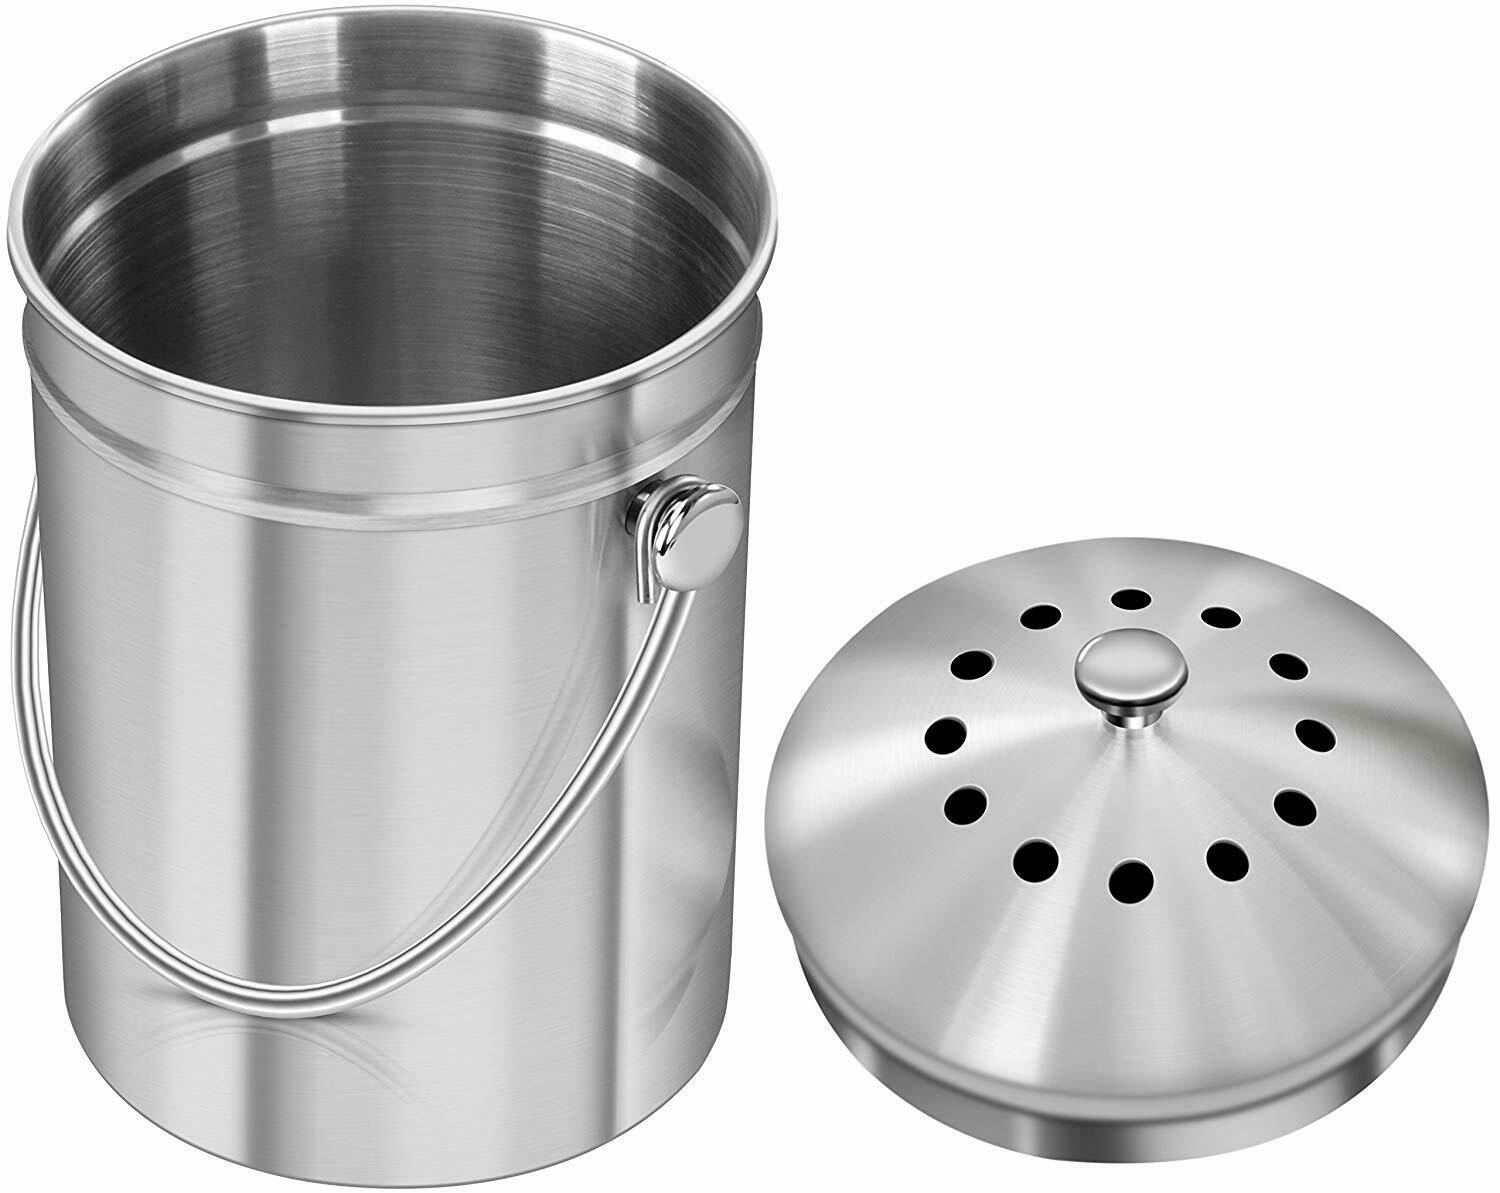 1.3 Gallon Stainless Steel Compost Bin with Lid By Utopia Kitchen